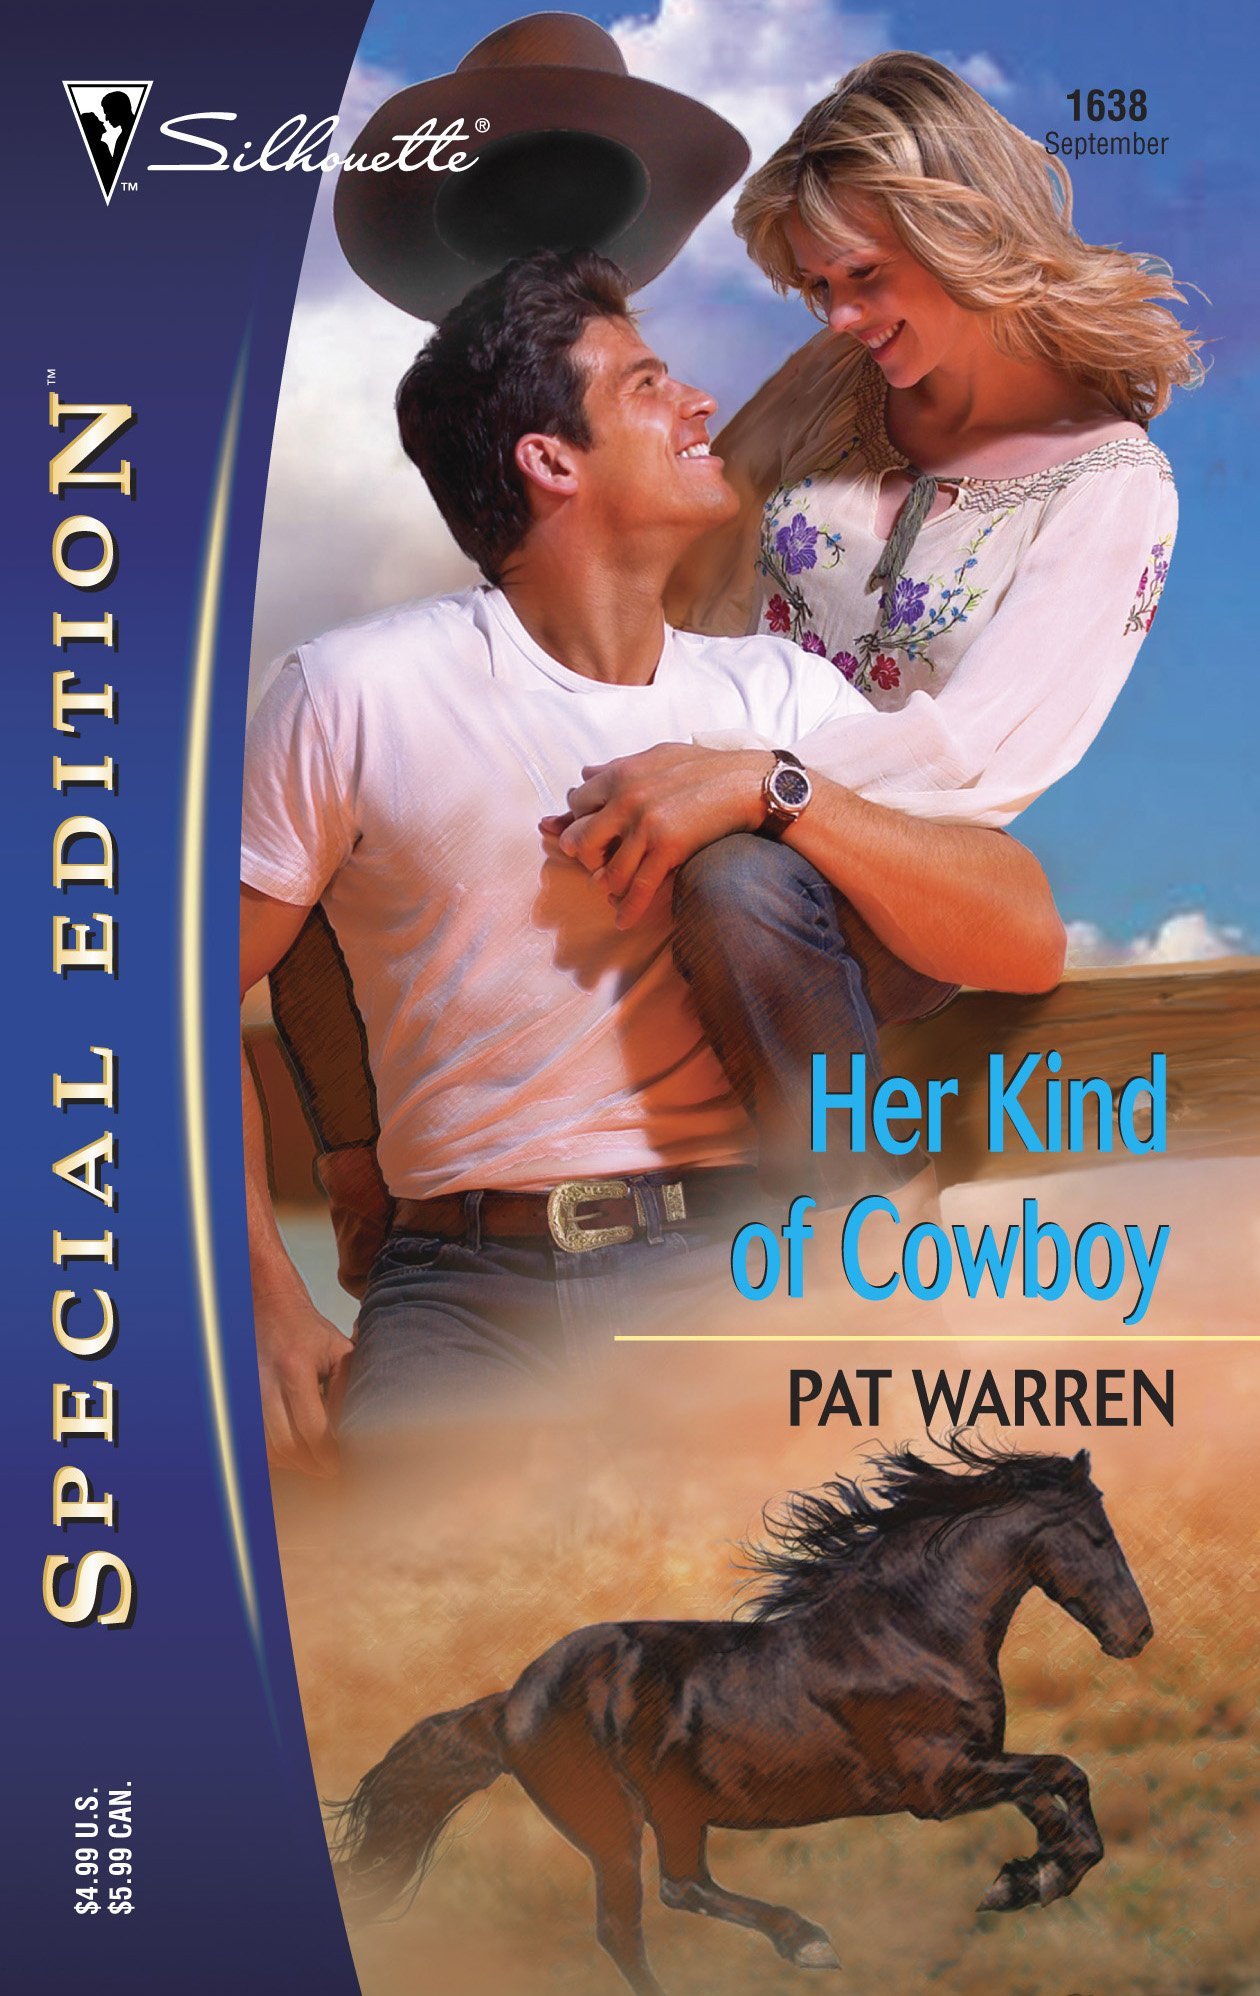 Her Kind of Cowboy (Silhouette Special Edition No. 1638)